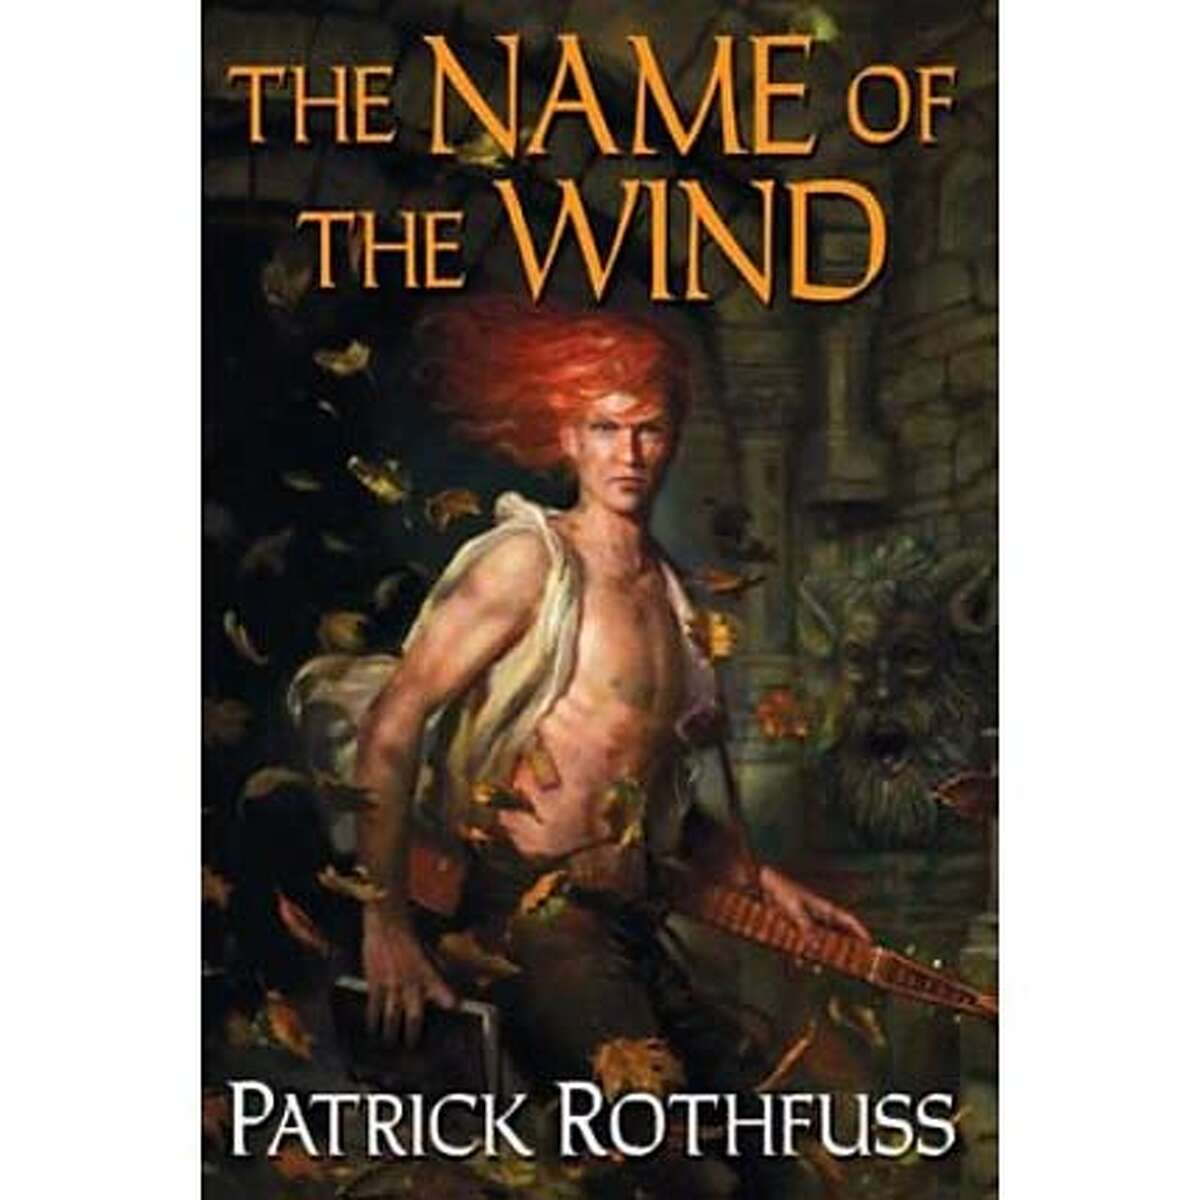 """""""The Name of the Wind"""" by Patrick Rothfuss (DAW; 662 pages; $24.95)"""